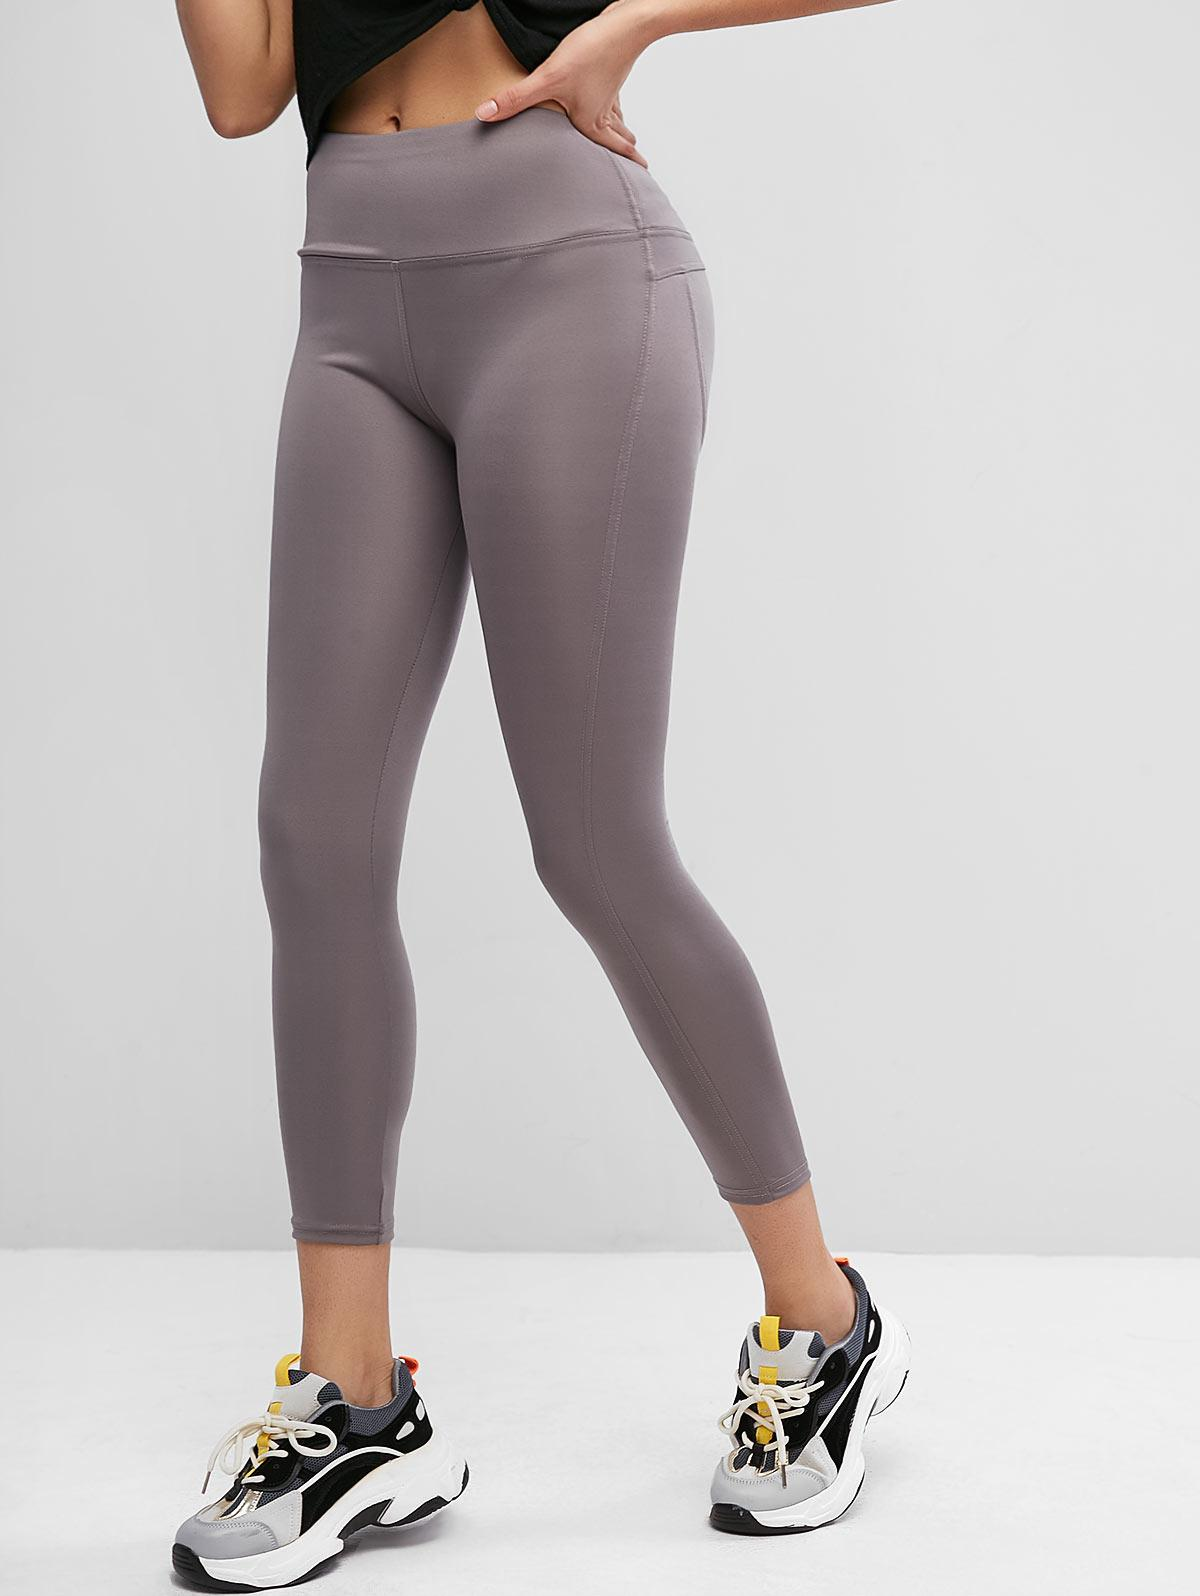 High Waisted Stitching Sports Leggings